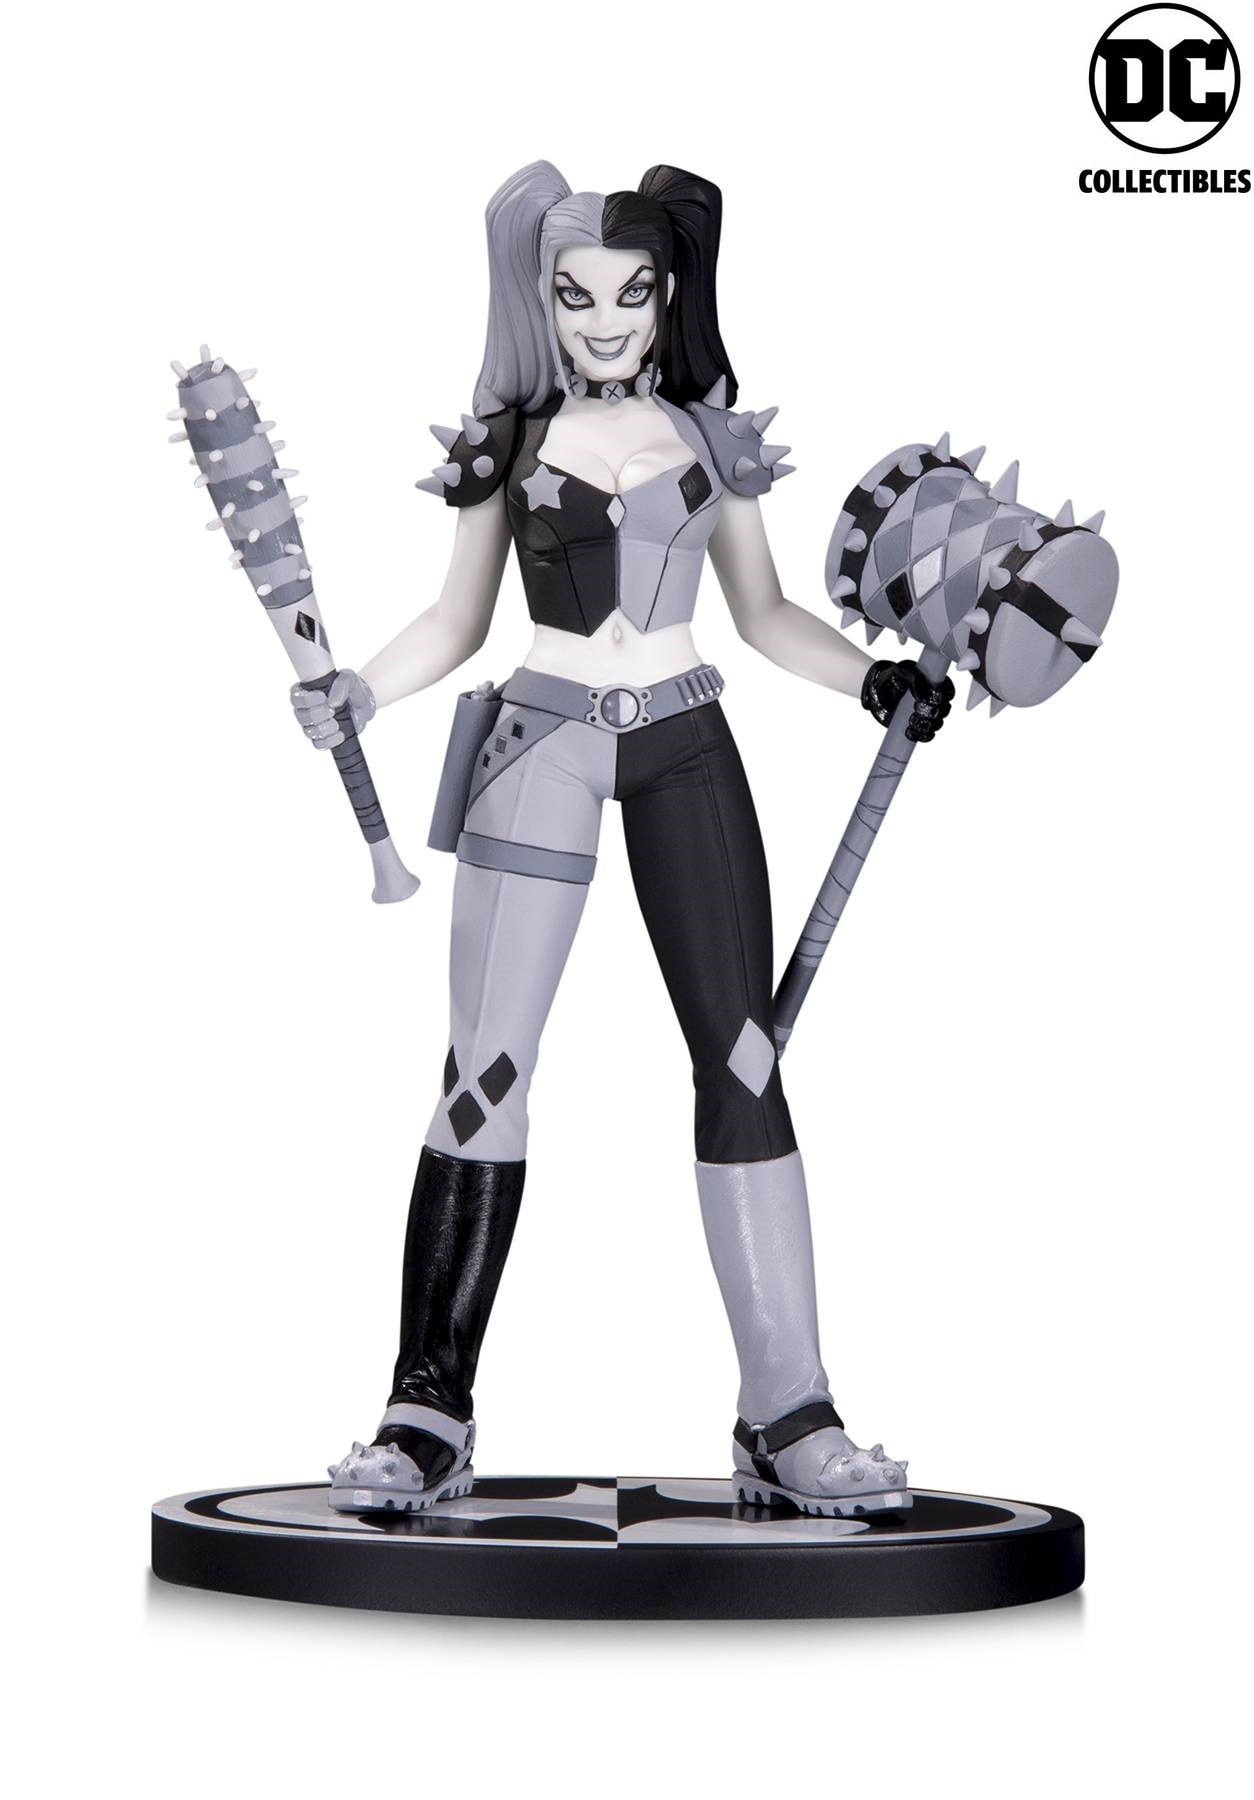 Pre-Order DC Comics Batman Black & White Conner Harley Quinn